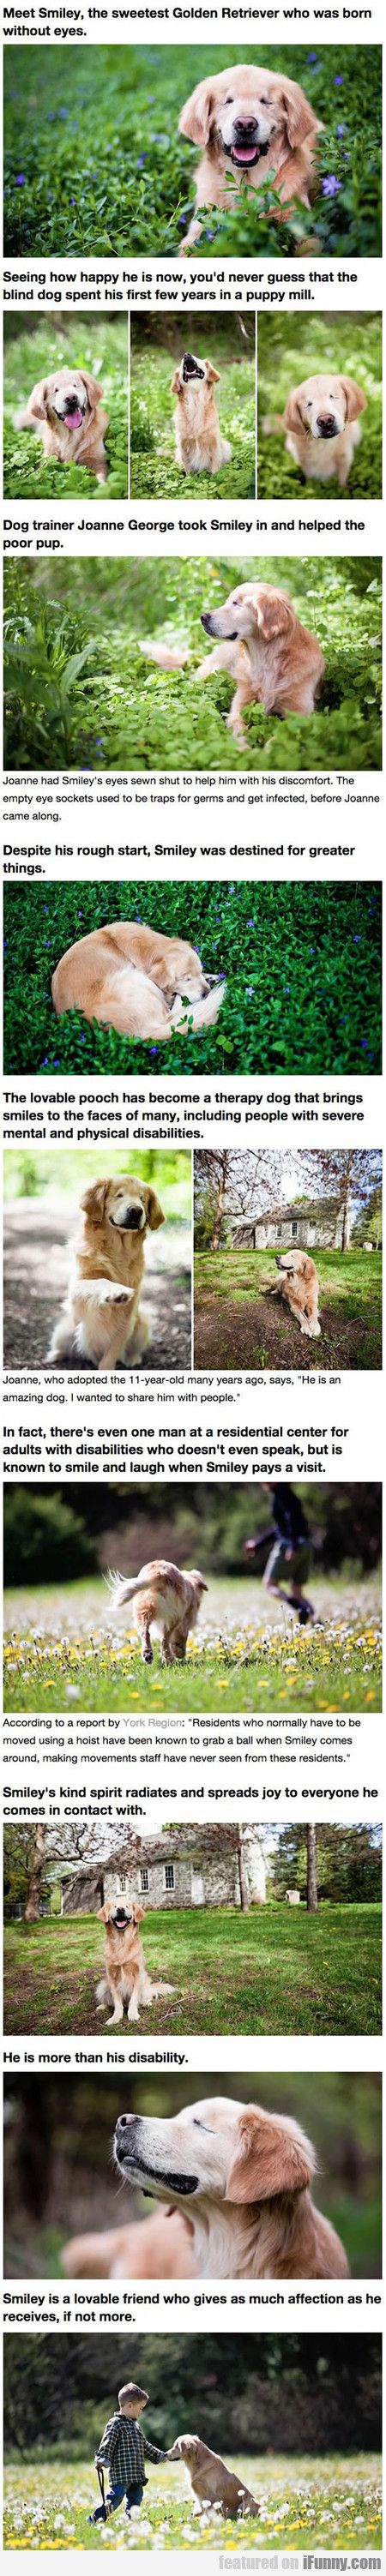 best cute images on pinterest adorable animals cute dogs and